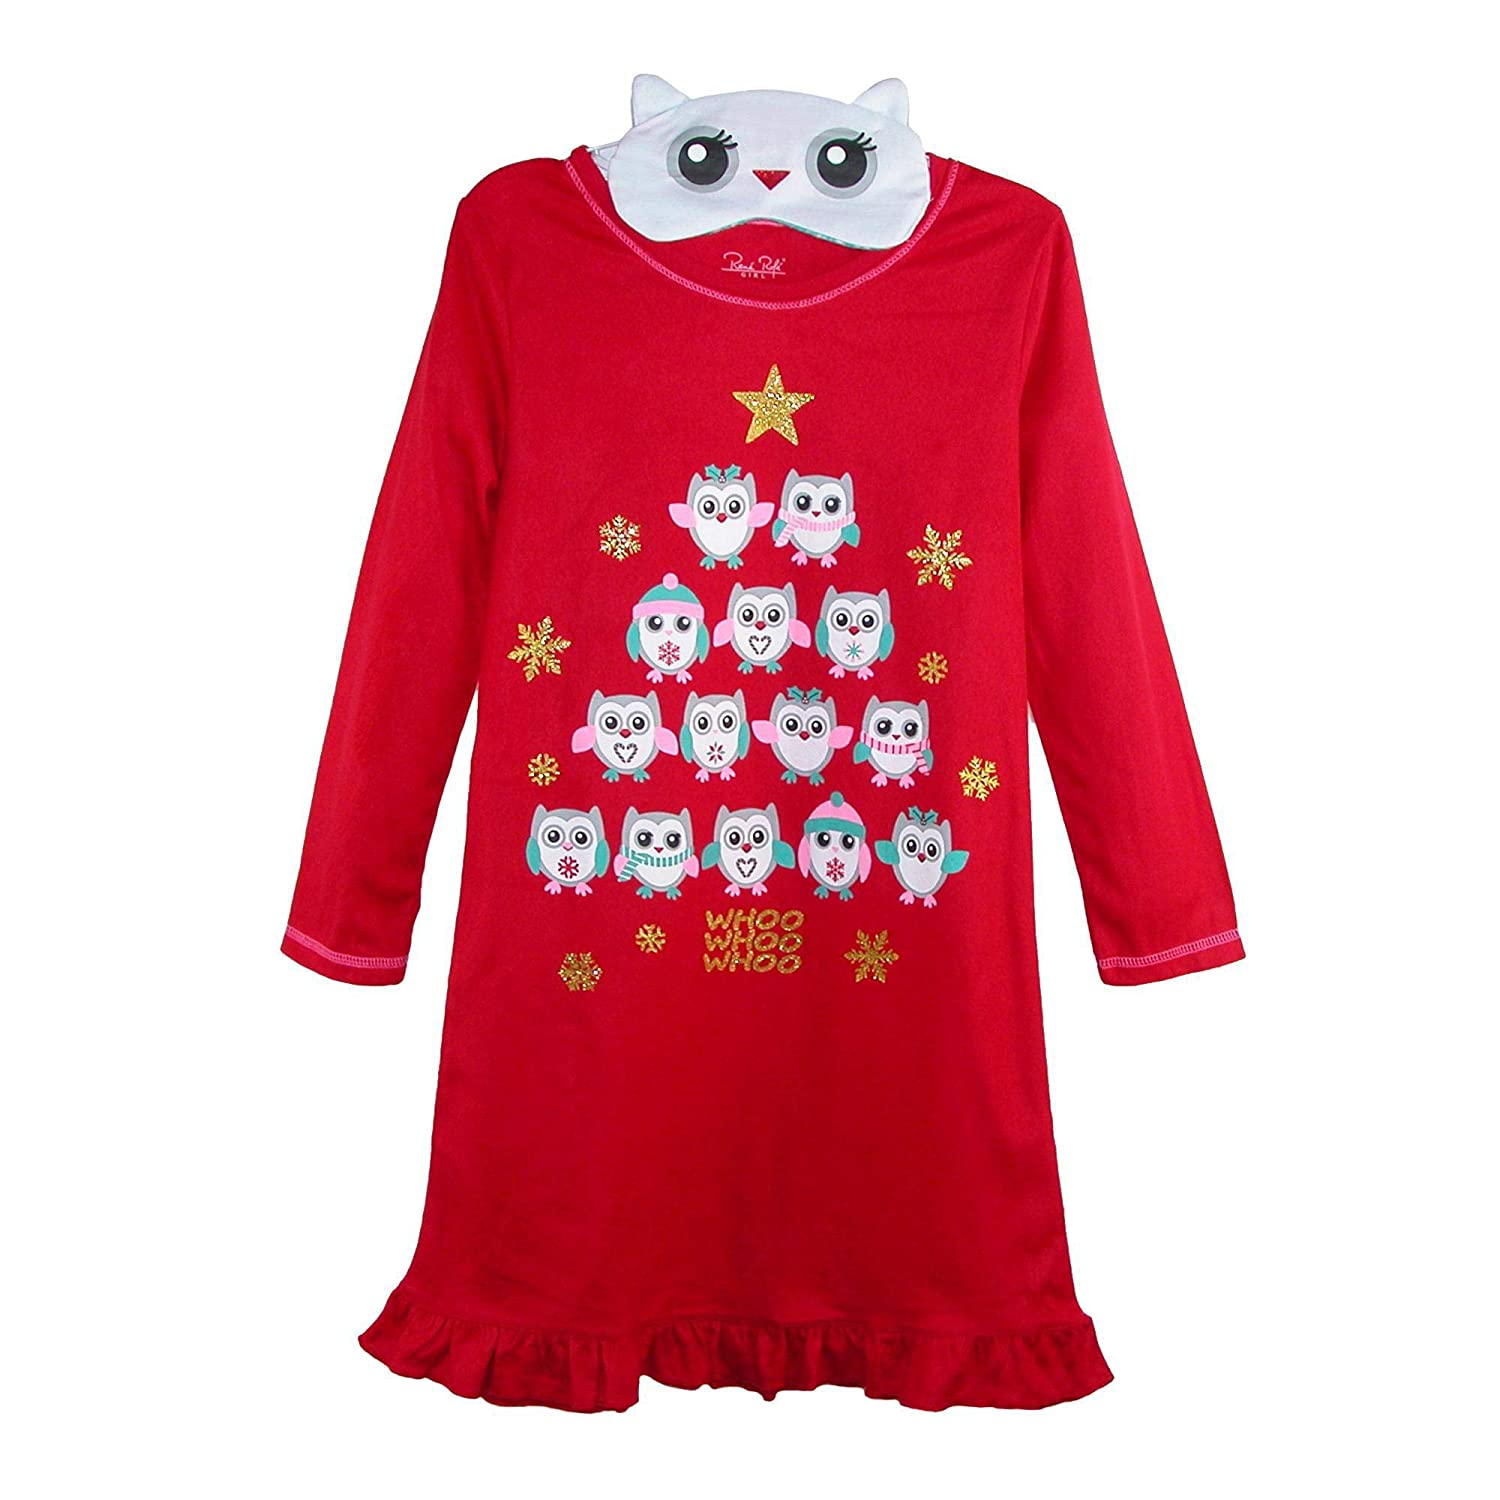 Rene Rofe Girl's Holiday Owl Nightgown Ruffle Trim